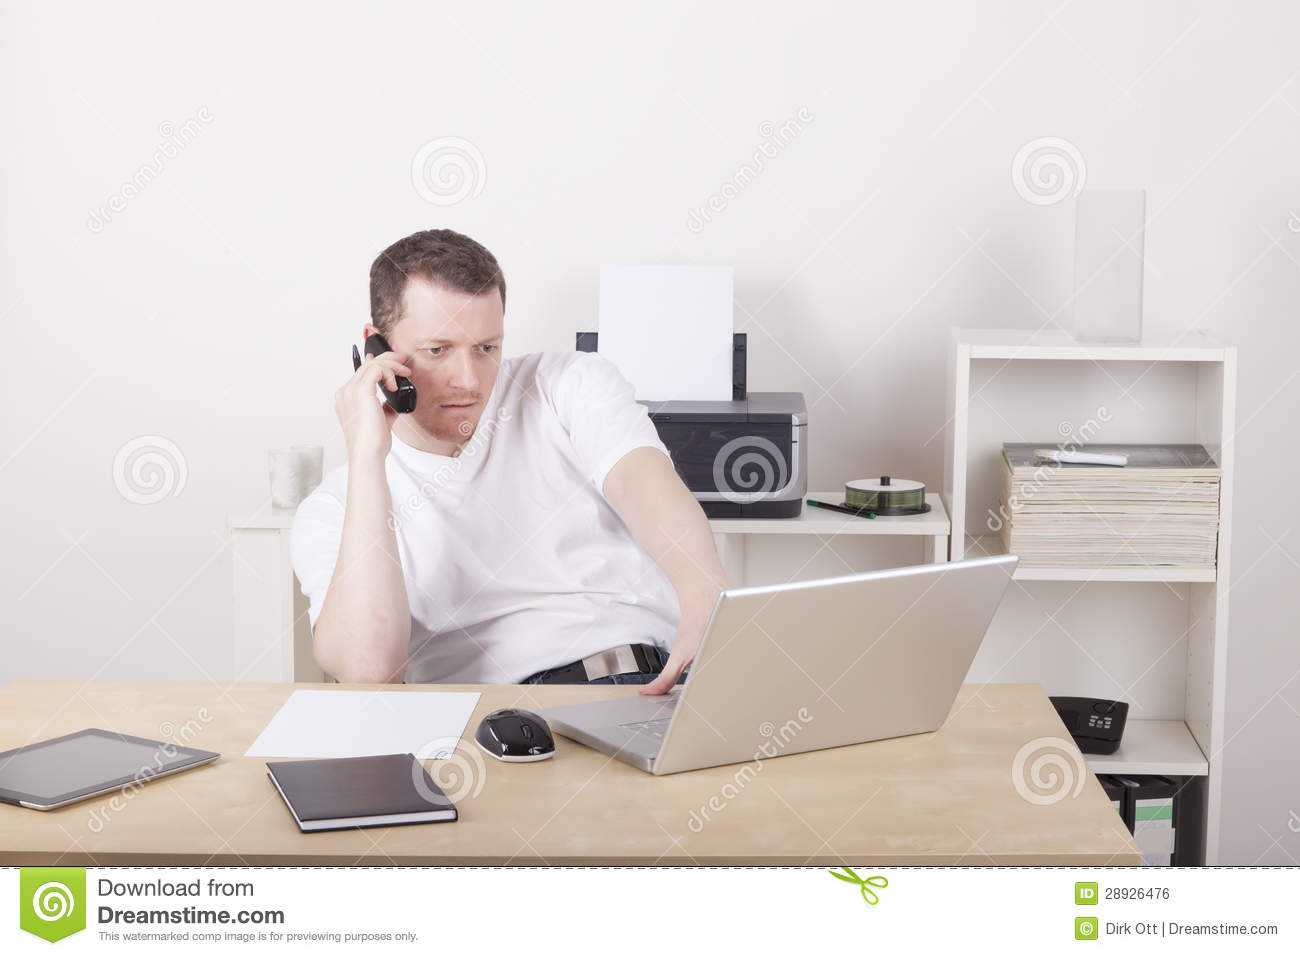 royalty free stock photo download man working in home office